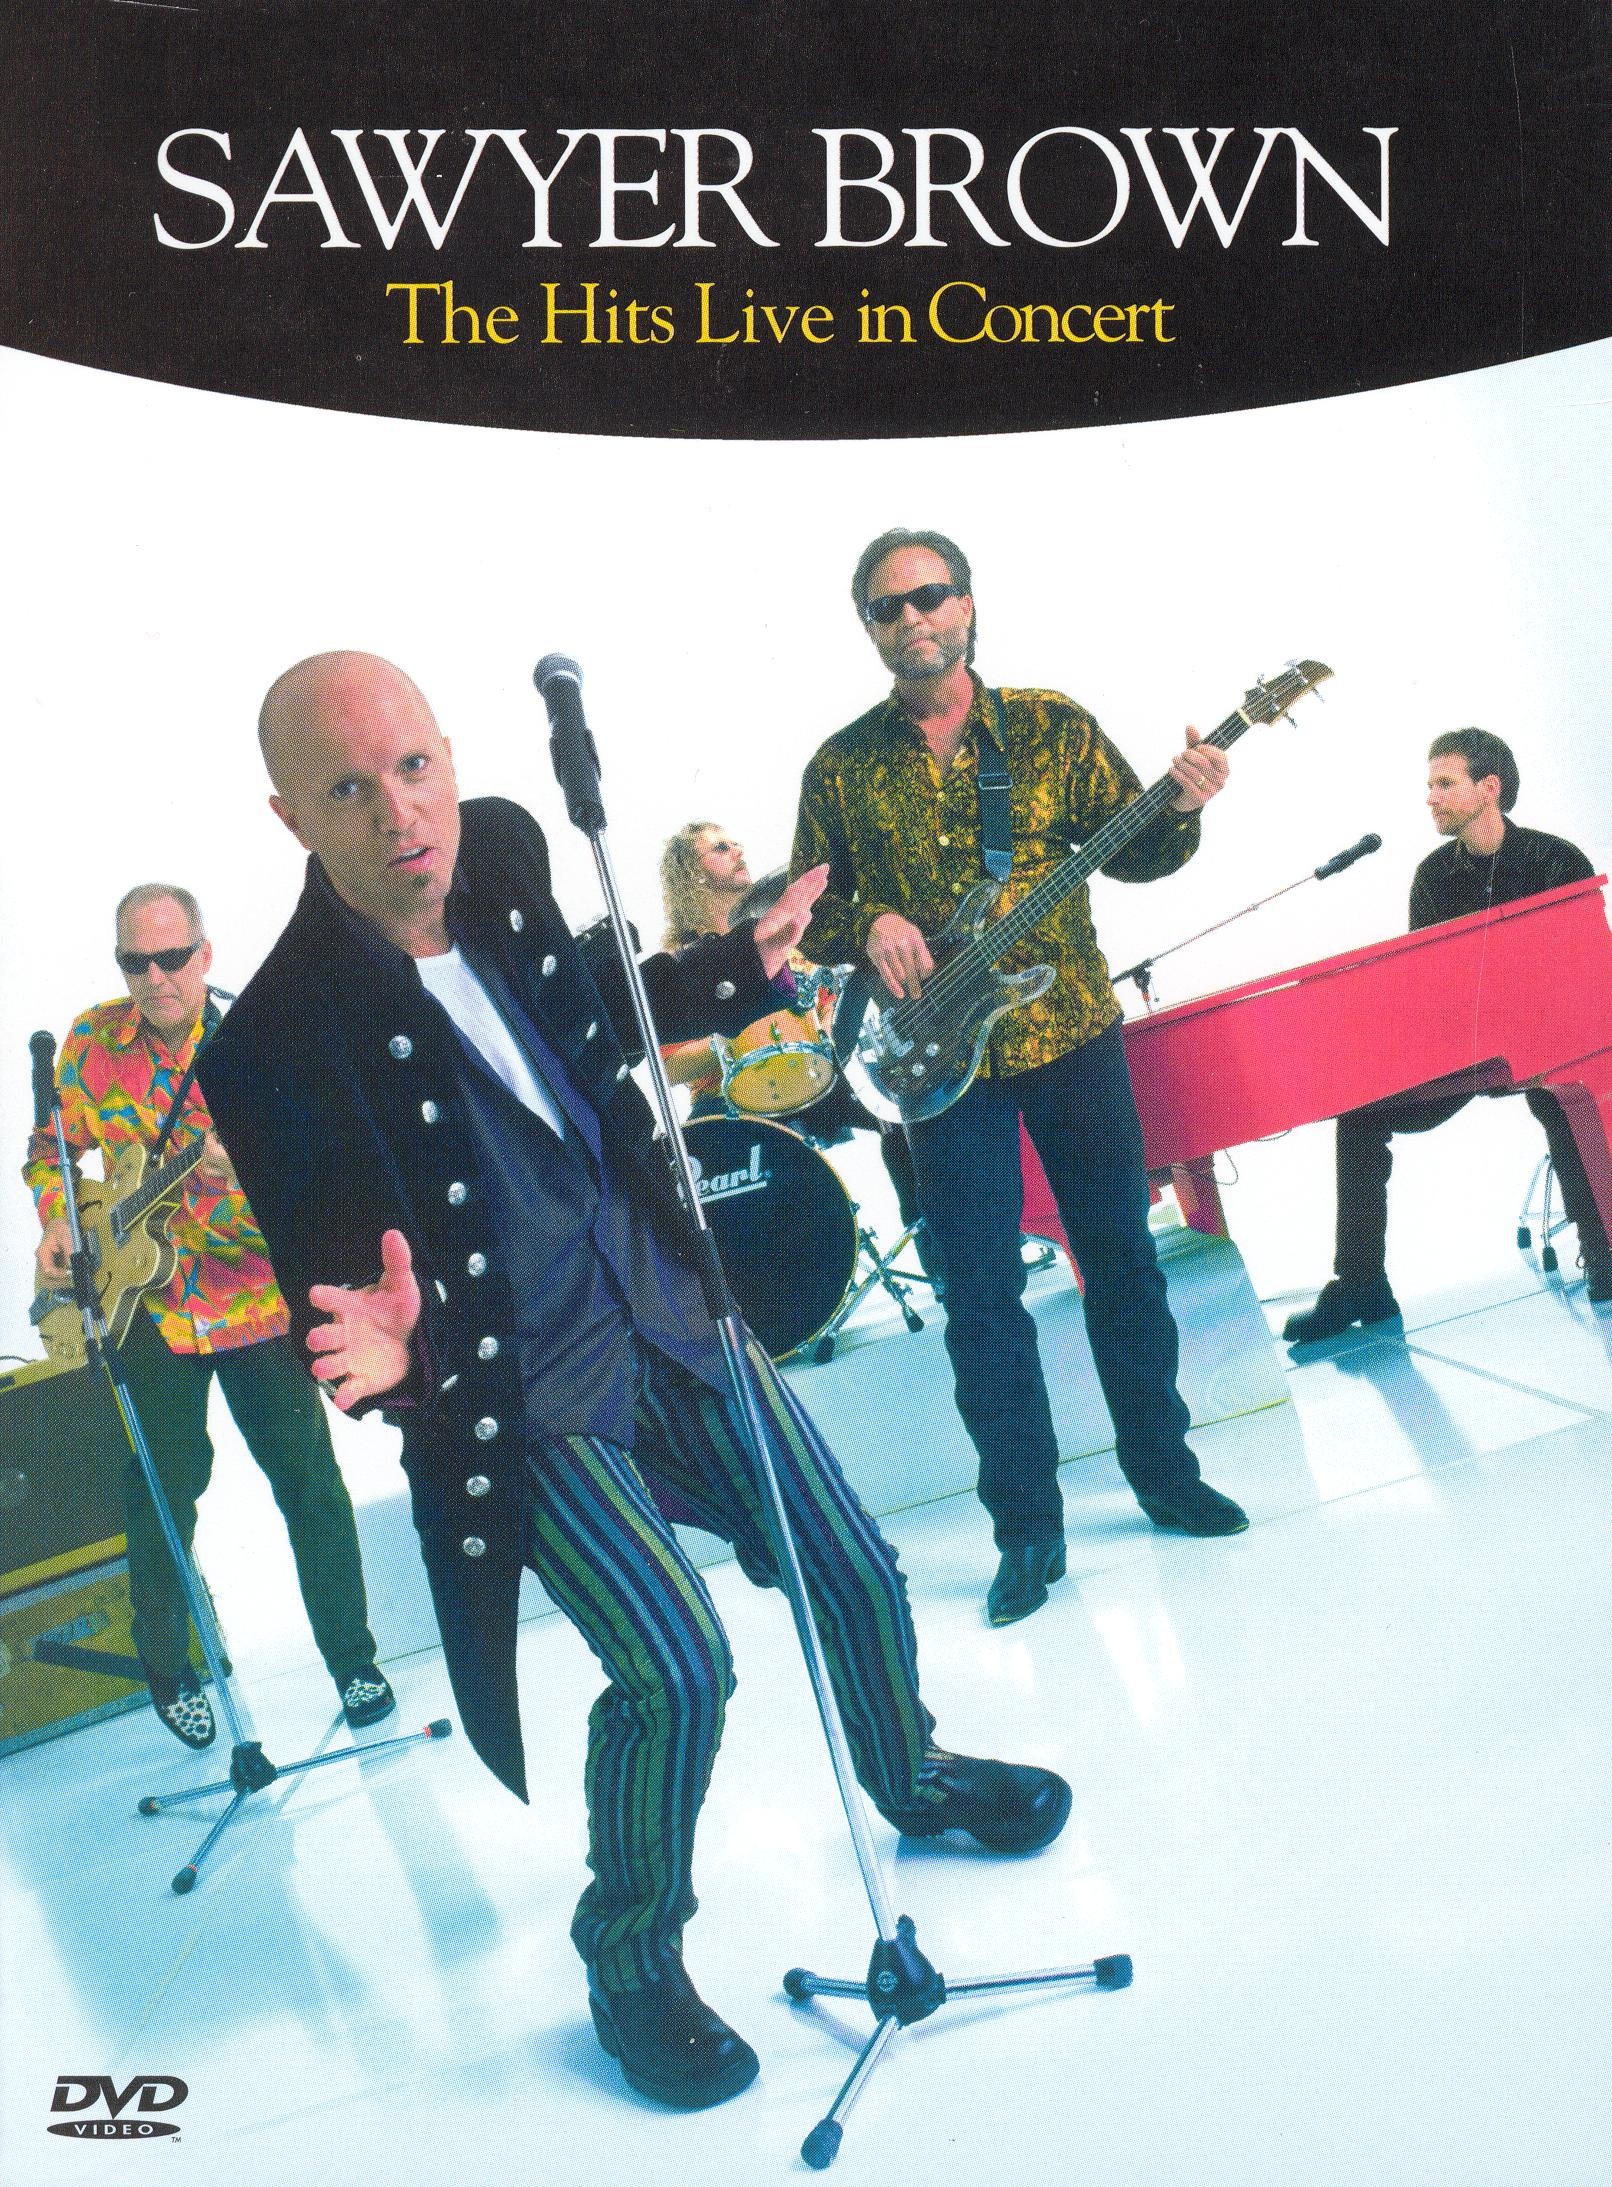 Sawyer Brown: The Hits Live in Concert